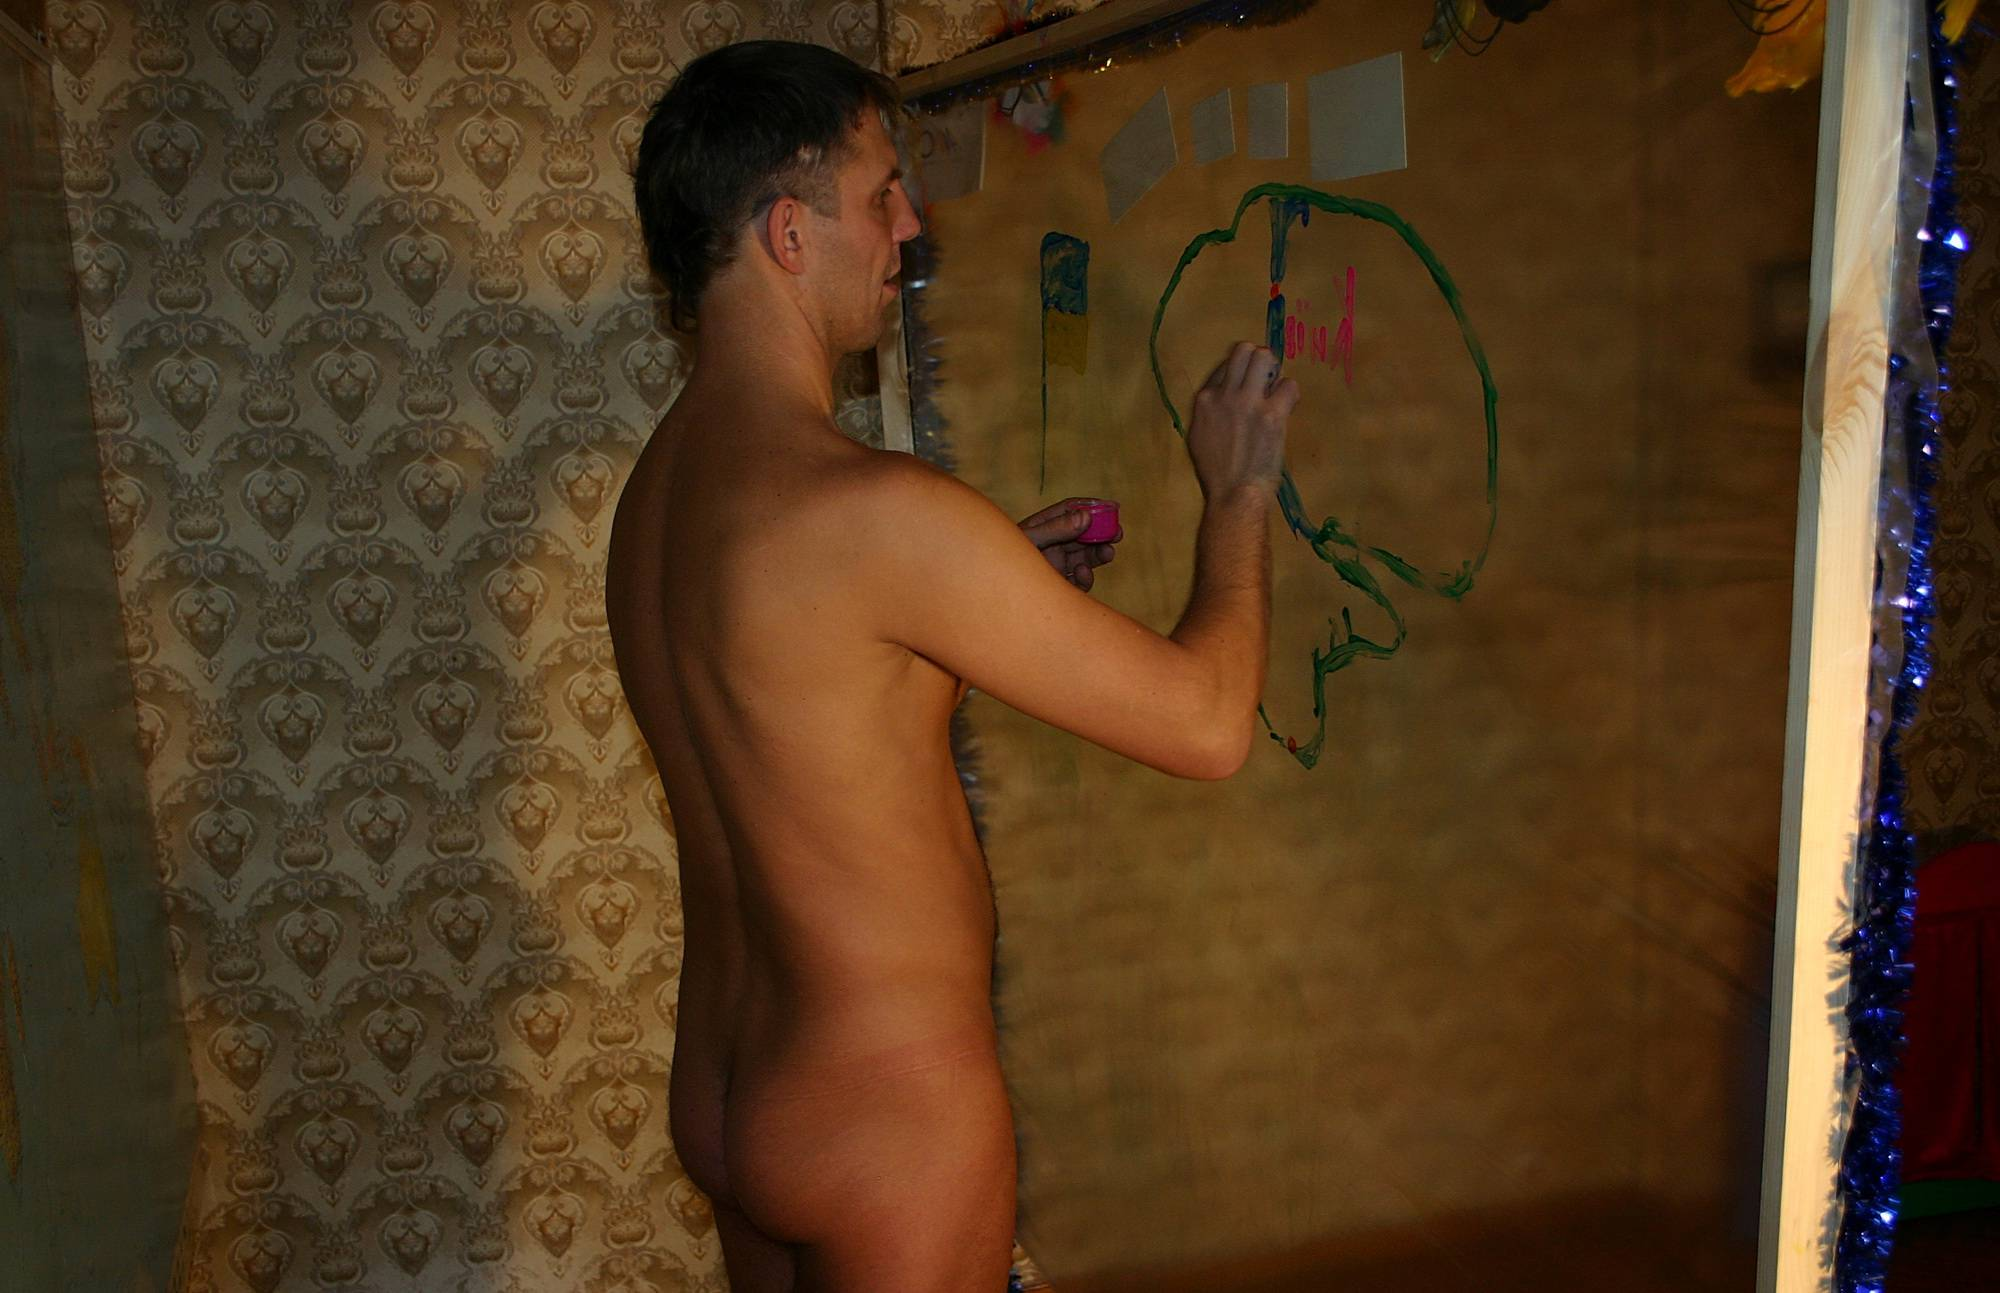 Nudist Photos Finger Painting Experts - 2